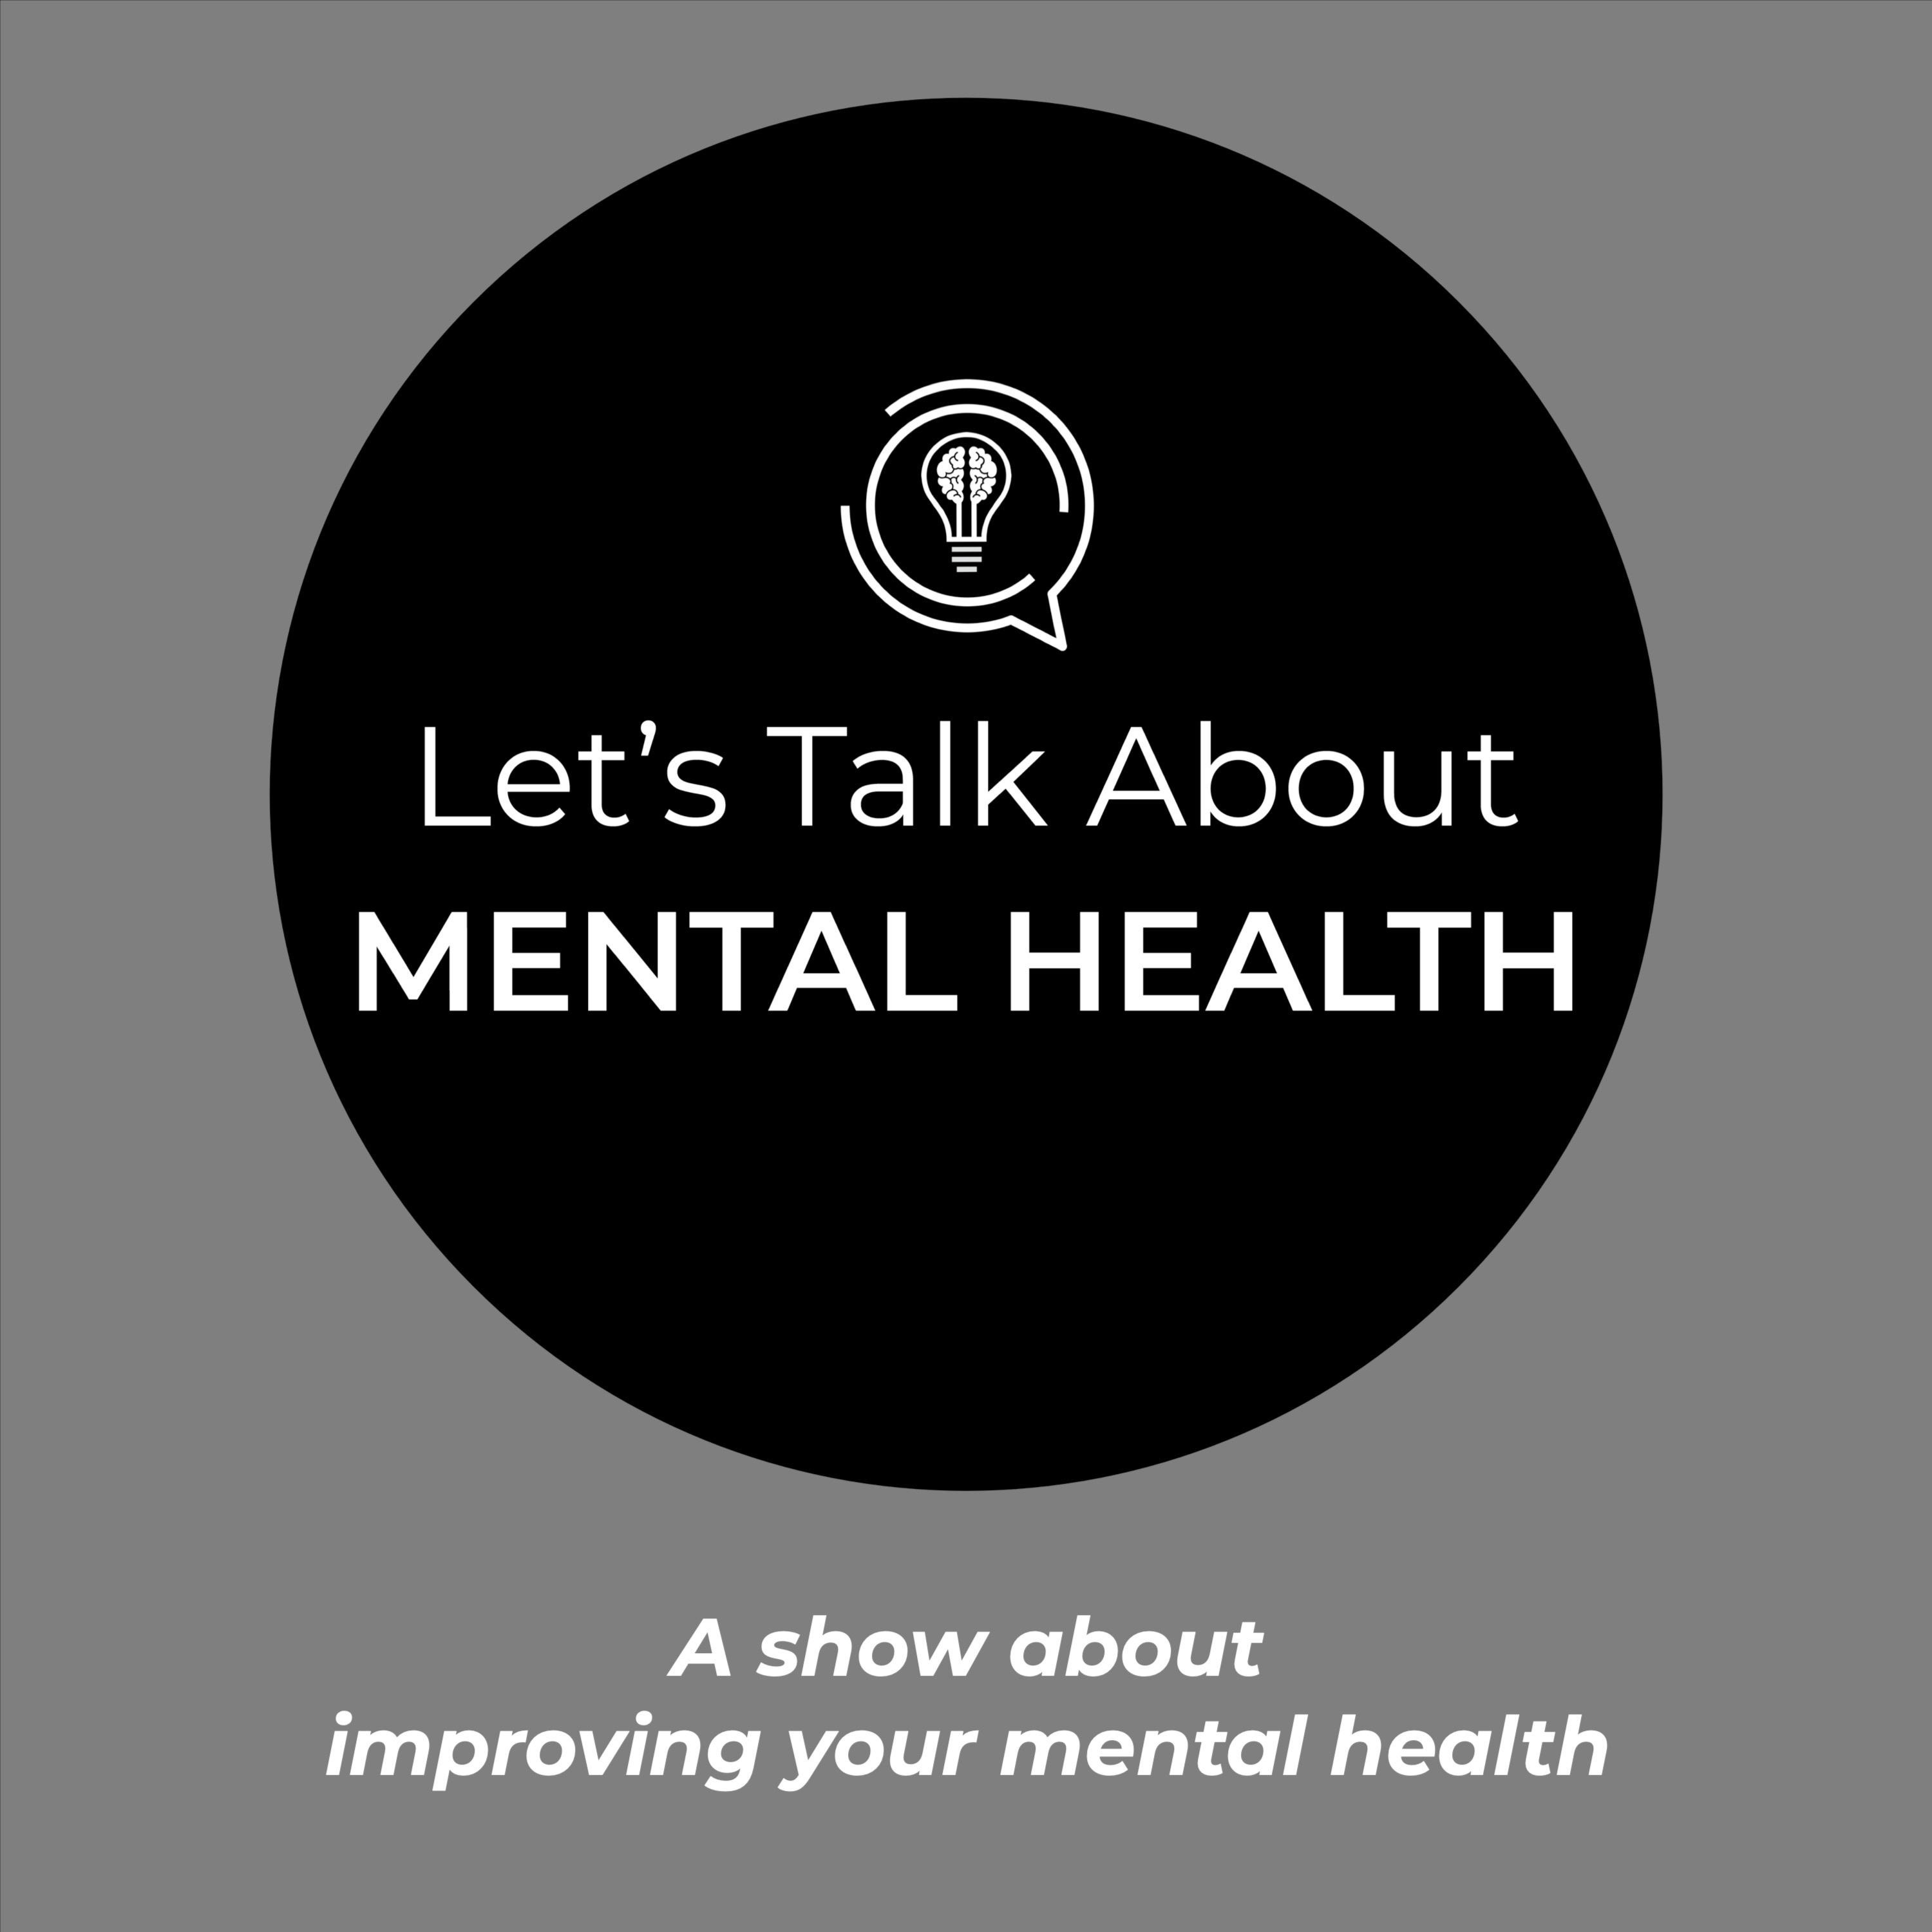 Let's Talk About Mental Health - Let's Talk About... Mindfulness